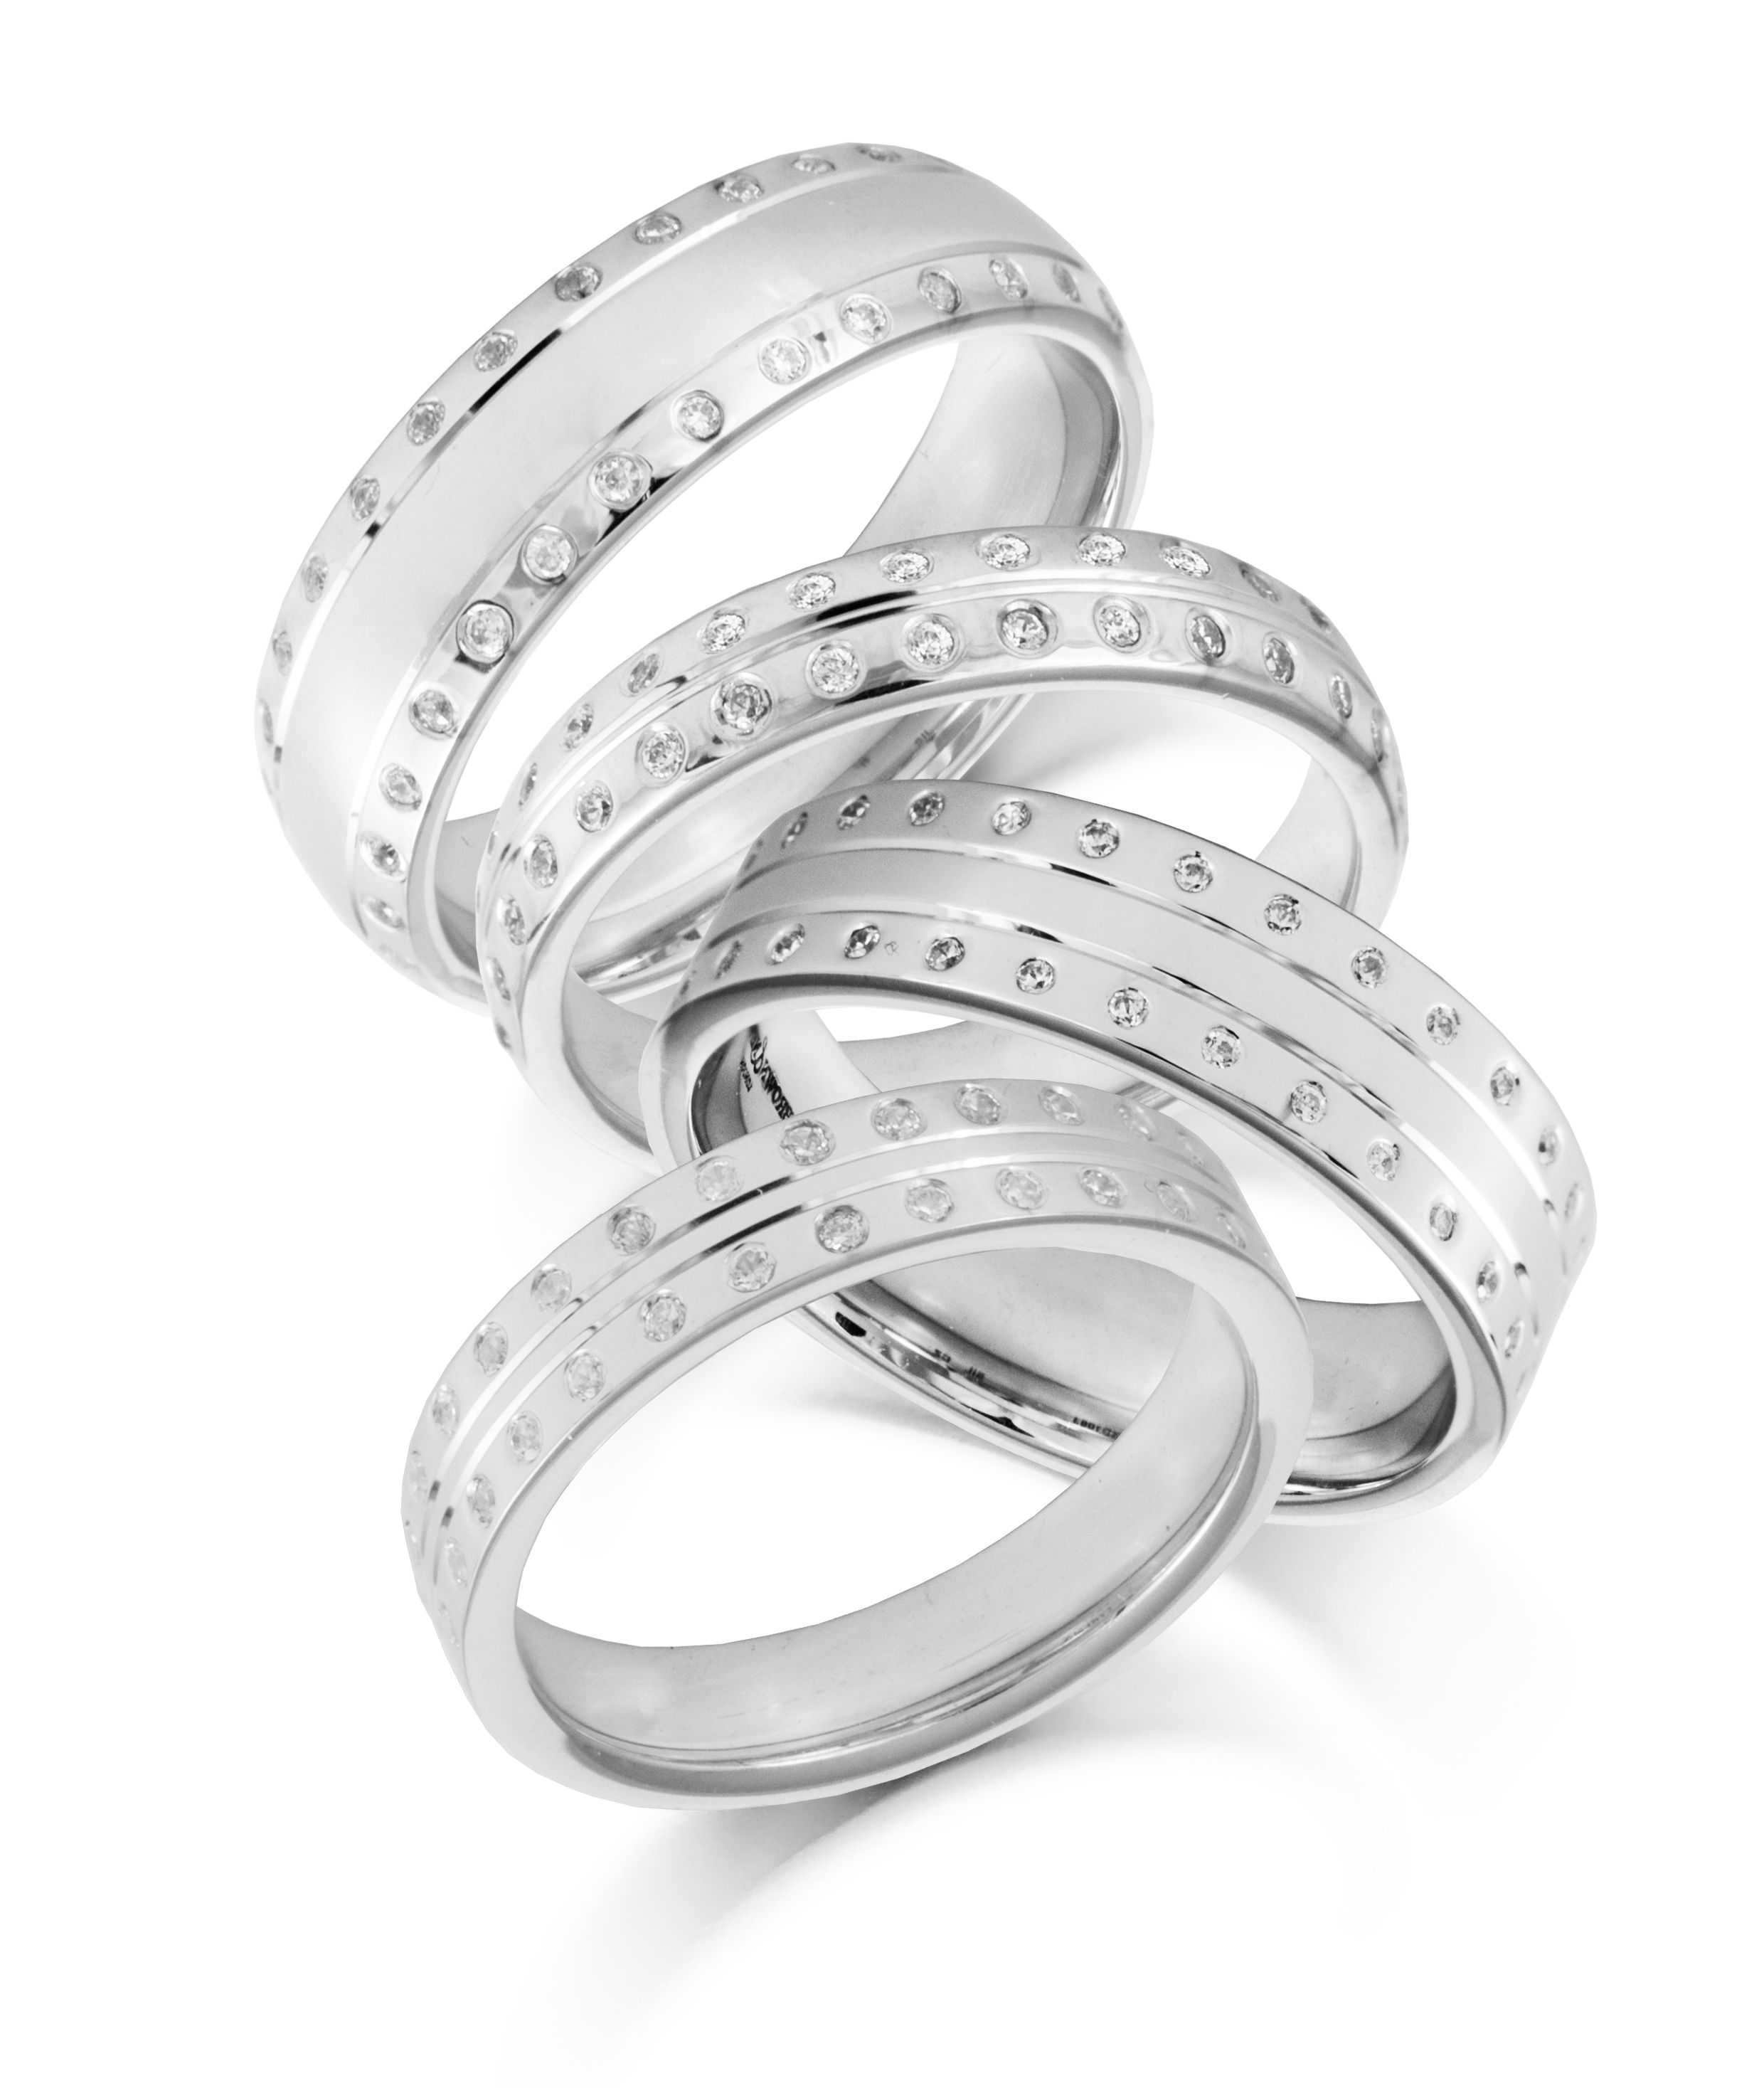 white his diamond wedding rings hers patterned p gold